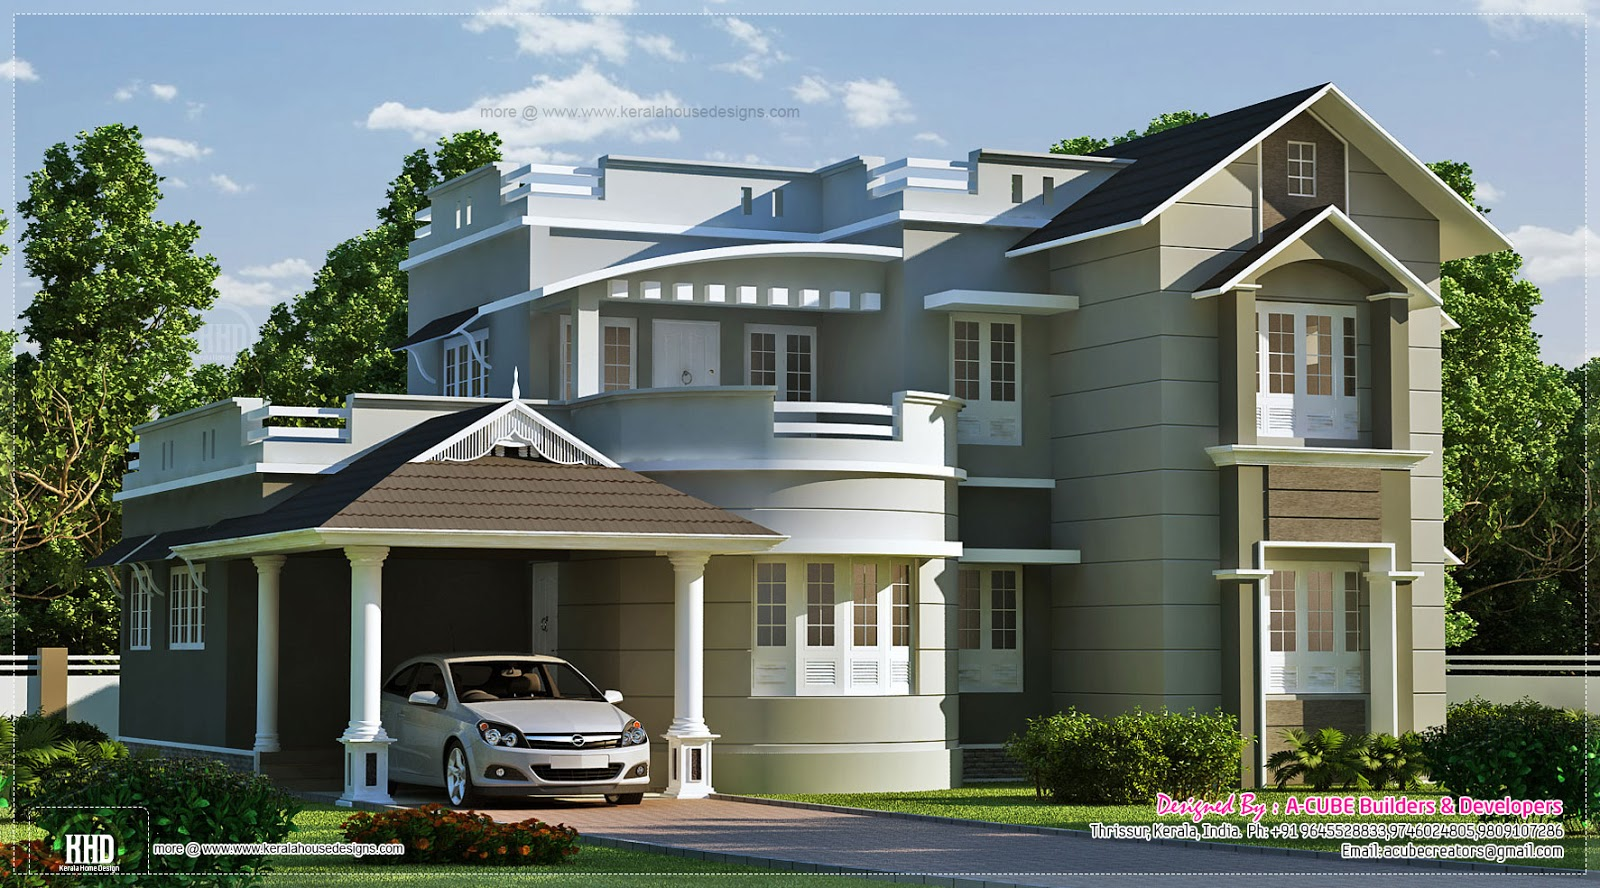 New home design best home decorating ideas for New house design